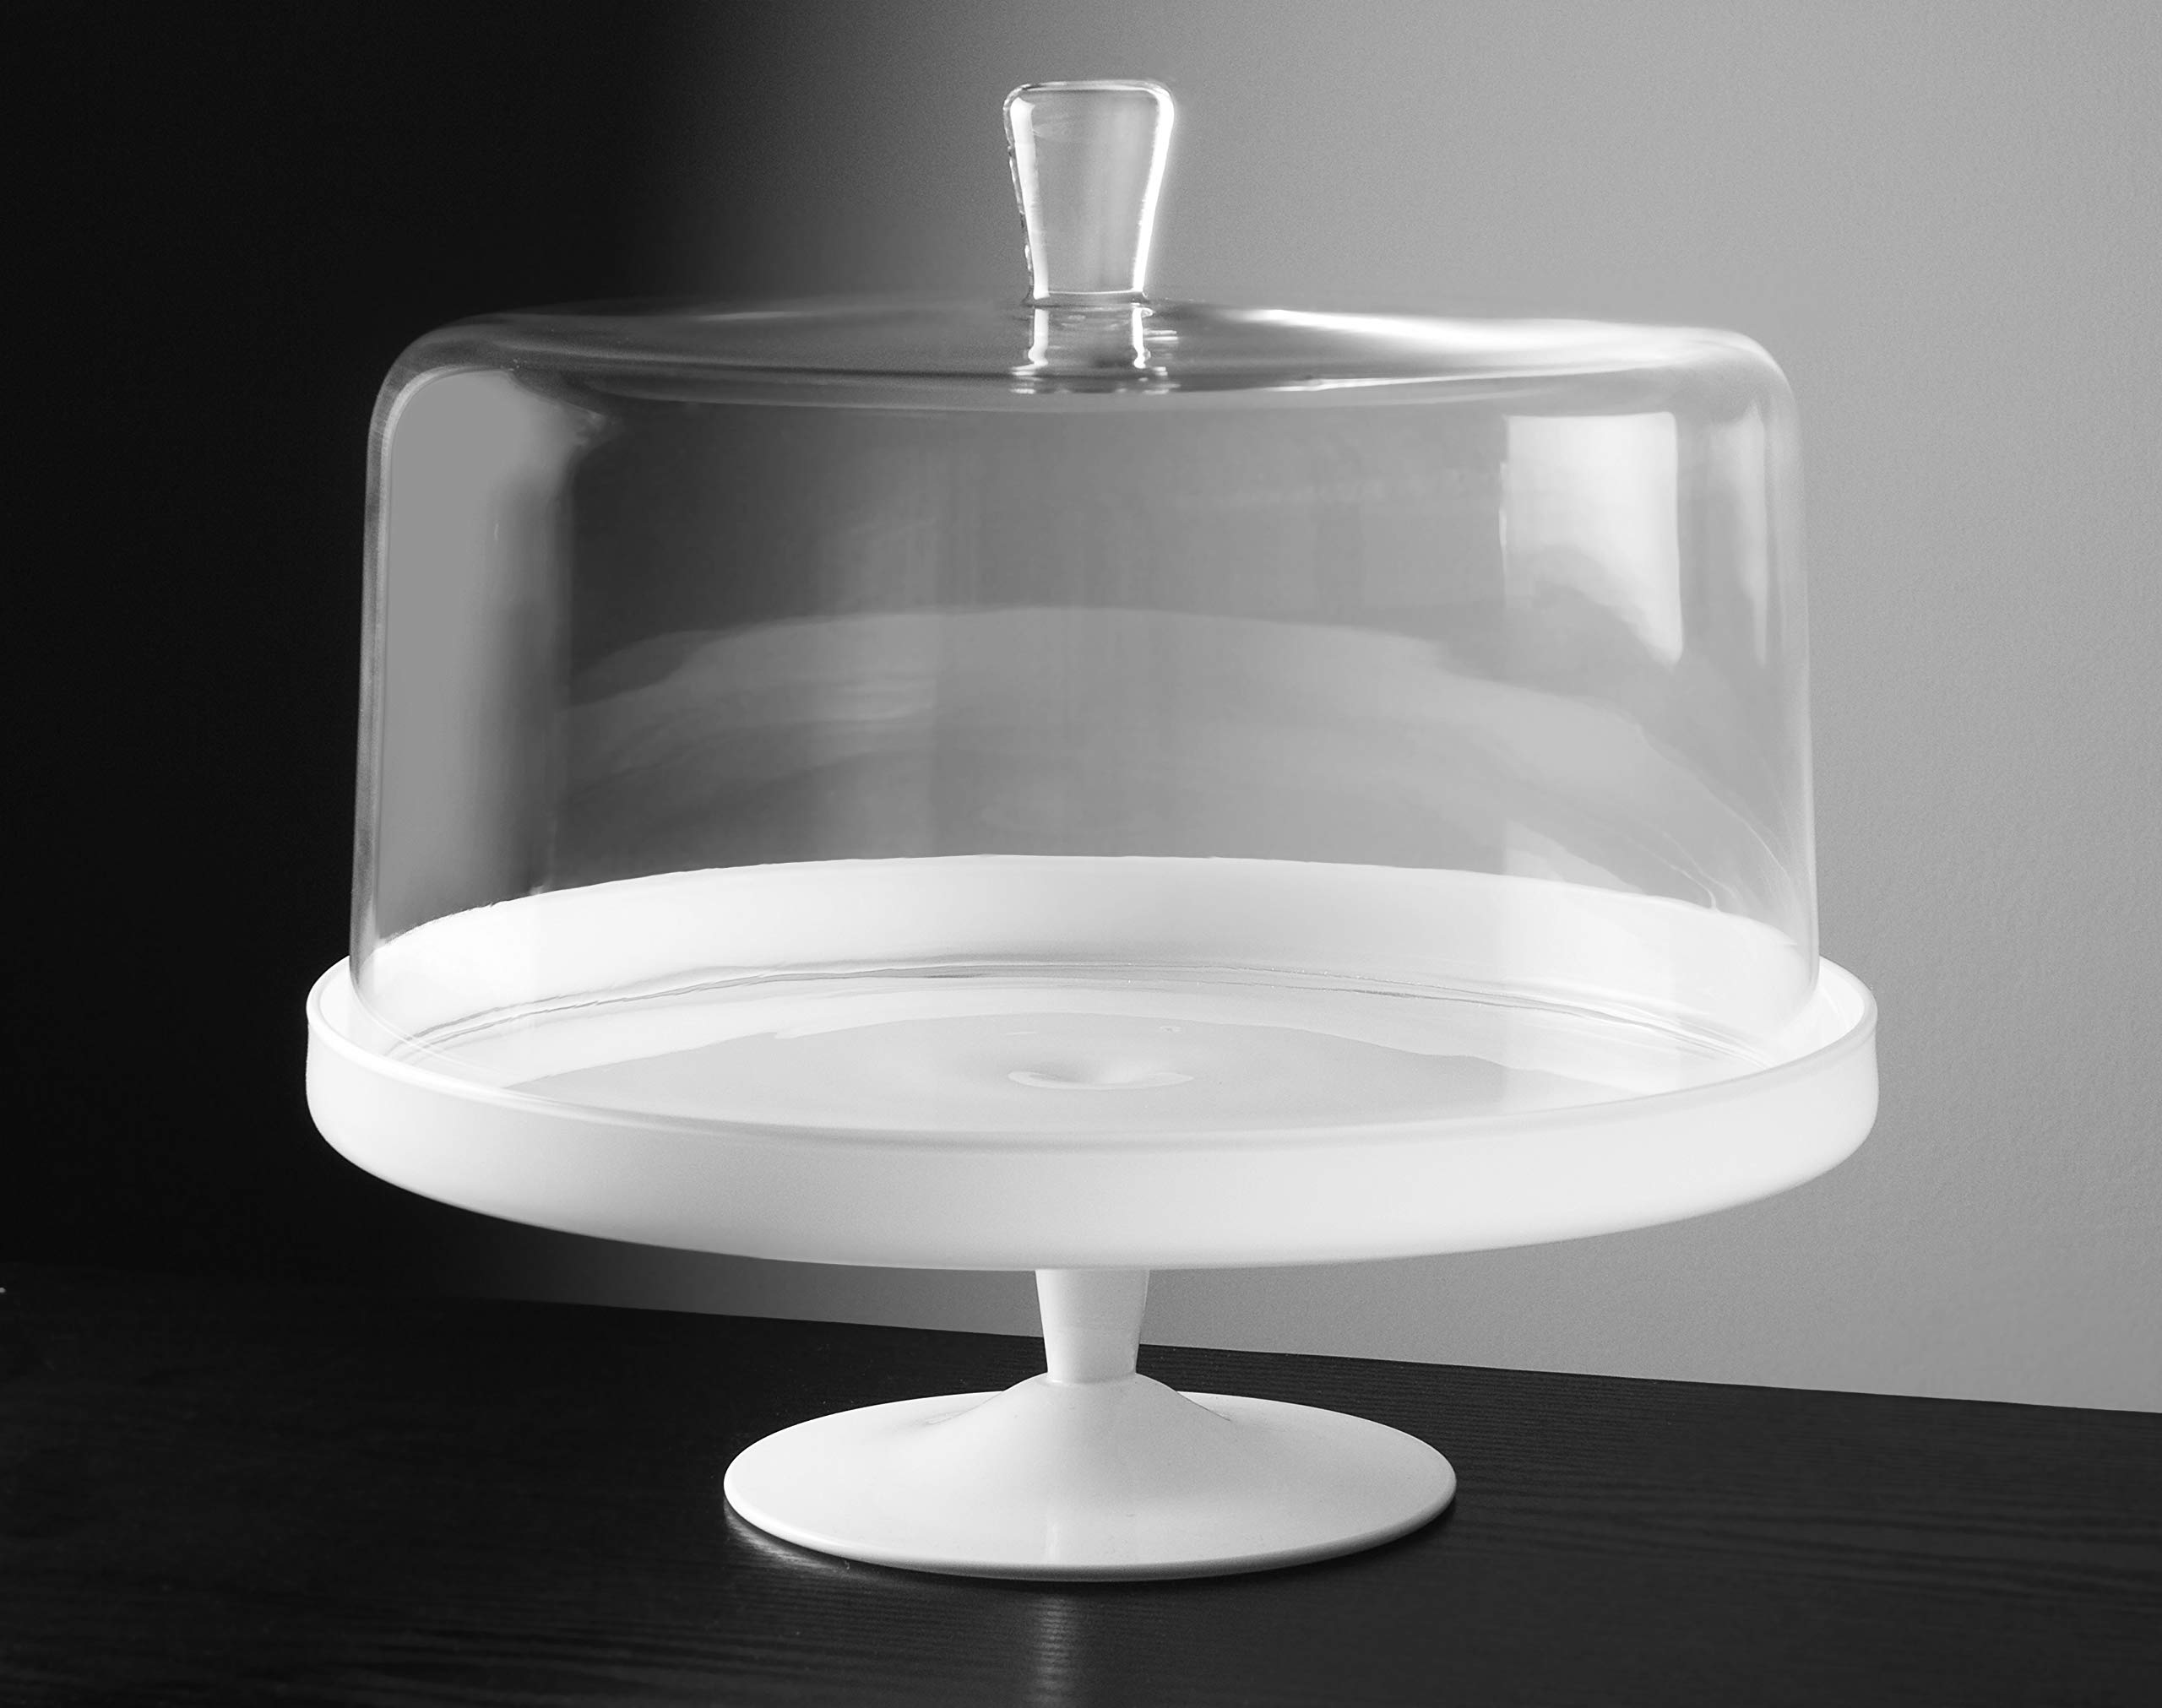 Barski - Euorpean Quality Glass - Large 2 Pc Set - Footed Glass - Opal (white) Cake Stand with Large Clear Cake Dome - 12.4'' Diameter - Made in Europe